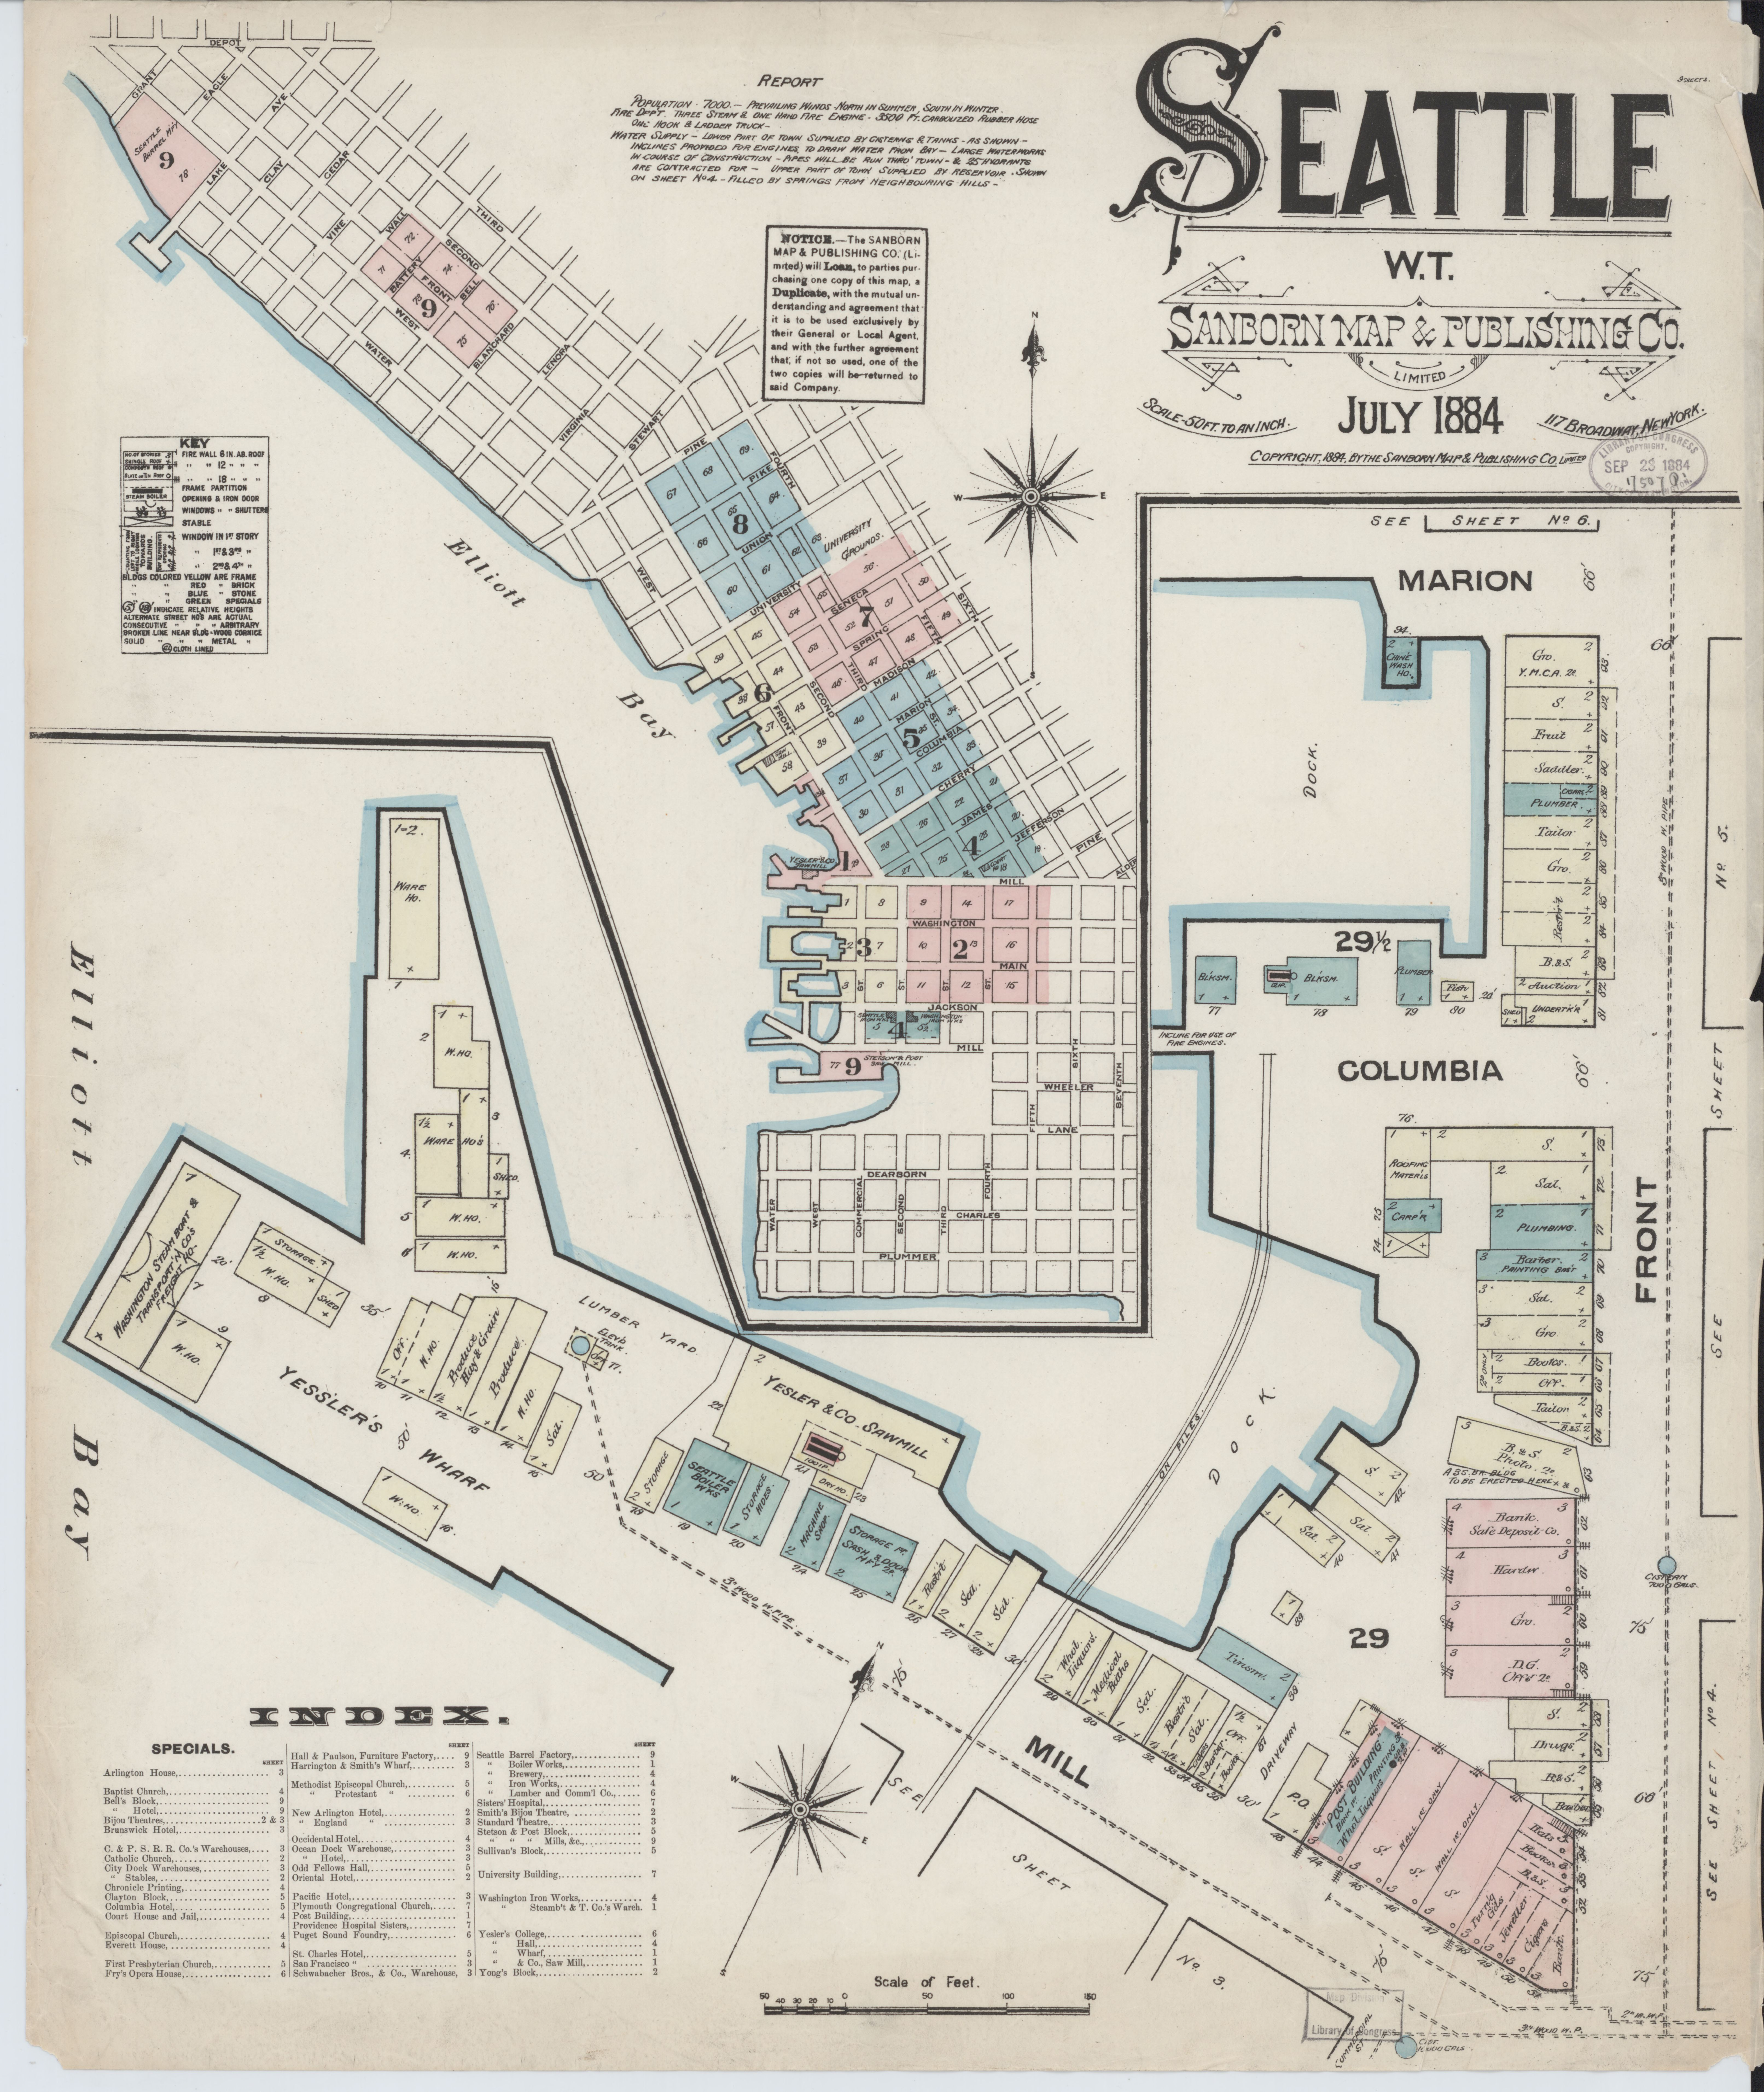 File:Sanborn Fire Insurance Map from Seattle, King County ... on tahoma washington map, city of richland washington map, rattlesnake ridge washington map, kittitas county washington map, seattle washington map, belltown washington map, nisqually river washington map, los angeles with zip codes map, elliott bay washington map, king fire map, quinault river washington map, north cascades national park washington map, pine lake washington map, interstate 405 washington map, garfield county washington map, pierce county washington map, bellevue washington map, beacon hill washington map, tacoma washington map, island county washington map,